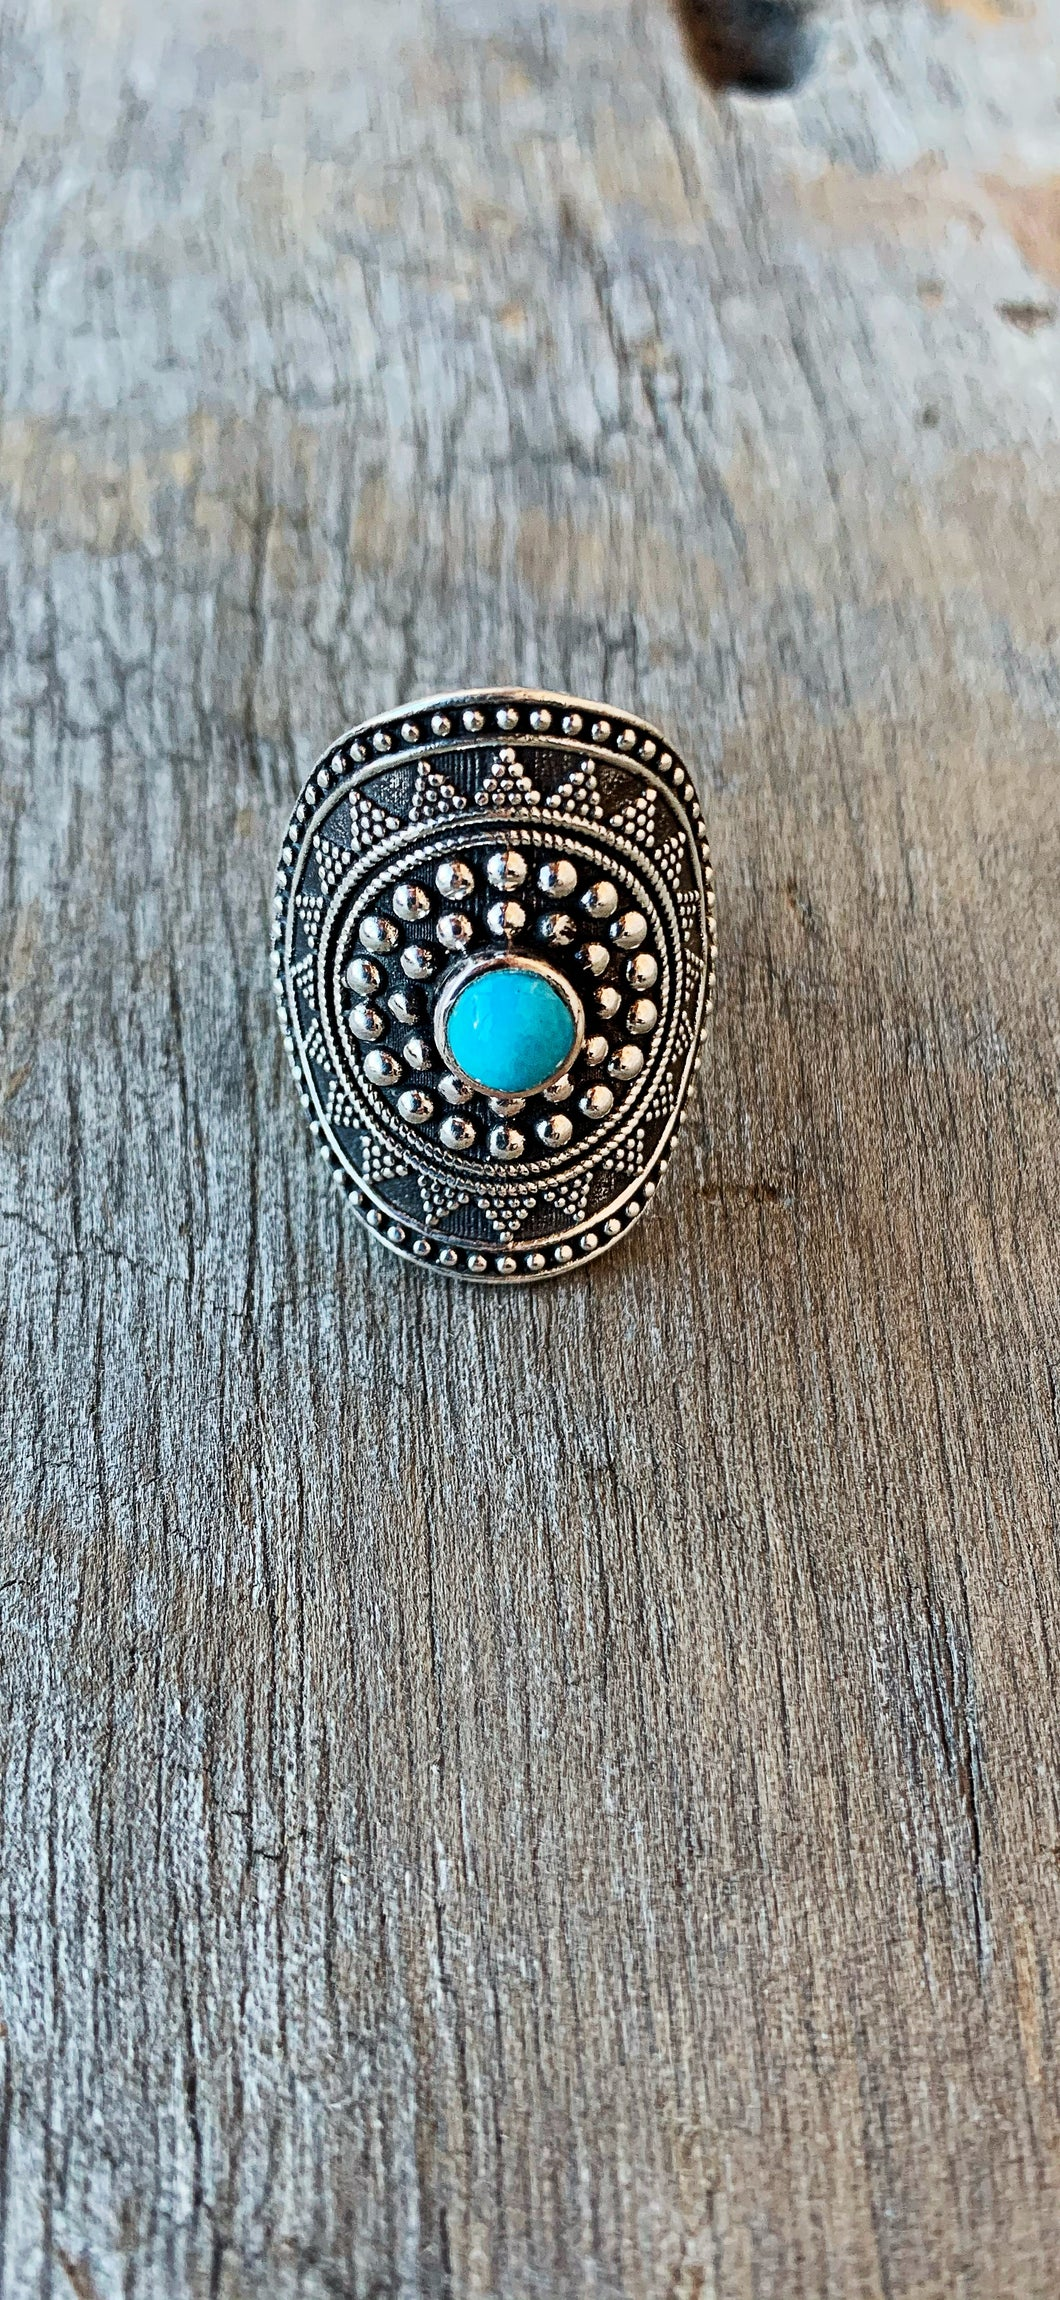 Eclectic Turquoise Ring